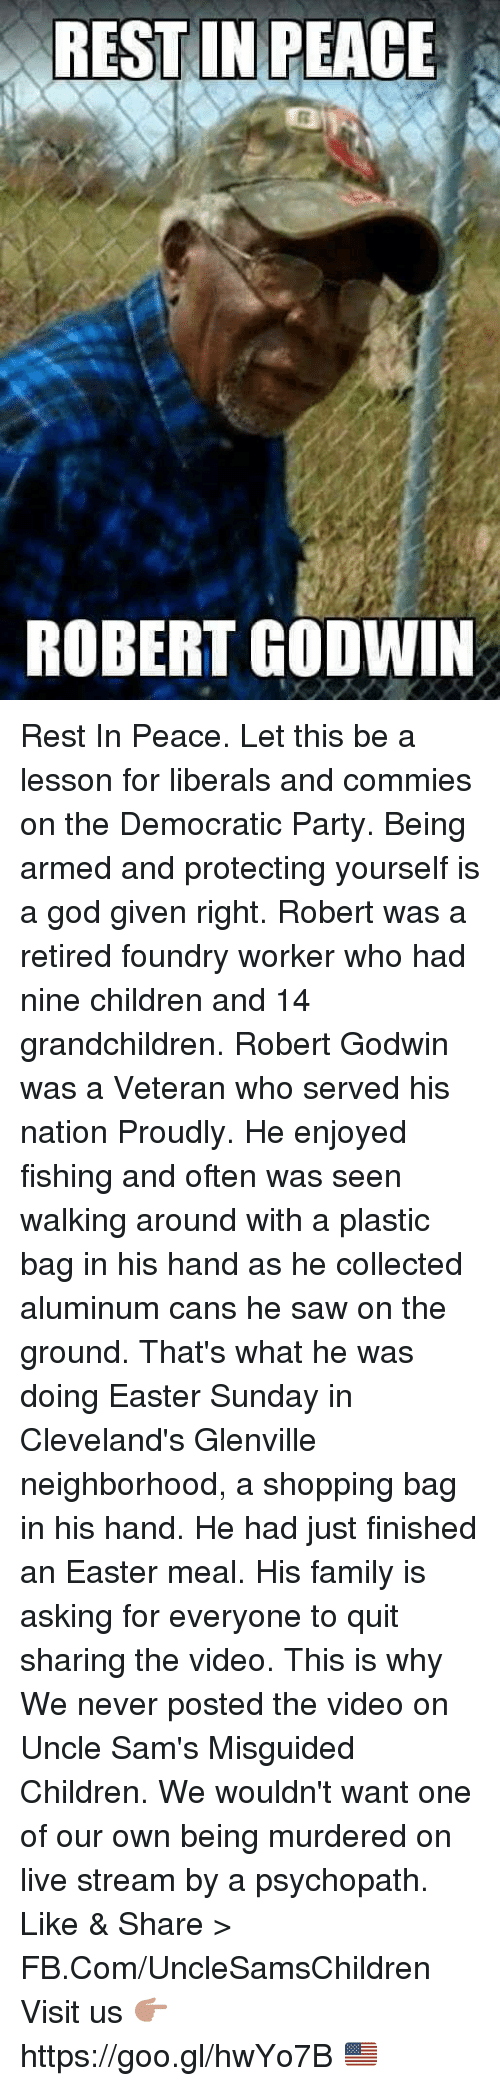 Children, Easter, and Family: REST IN PEACE  ROBERT GODWIN Rest In Peace. Let this be a lesson for liberals and commies on the Democratic Party. Being armed and protecting yourself is a god given right.  Robert was a retired foundry worker who had nine children and 14 grandchildren. Robert Godwin was a Veteran who served his nation Proudly. He enjoyed fishing and often was seen walking around with a plastic bag in his hand as he collected aluminum cans he saw on the ground.  That's what he was doing Easter Sunday in Cleveland's Glenville neighborhood, a shopping bag in his hand. He had just finished an Easter meal. His family is asking for everyone to quit sharing the video. This is why We never posted the video on Uncle Sam's Misguided Children. We wouldn't want one of our own being murdered on live stream by a psychopath.  Like & Share > FB.Com/UncleSamsChildren  Visit us 👉🏽 https://goo.gl/hwYo7B 🇺🇸